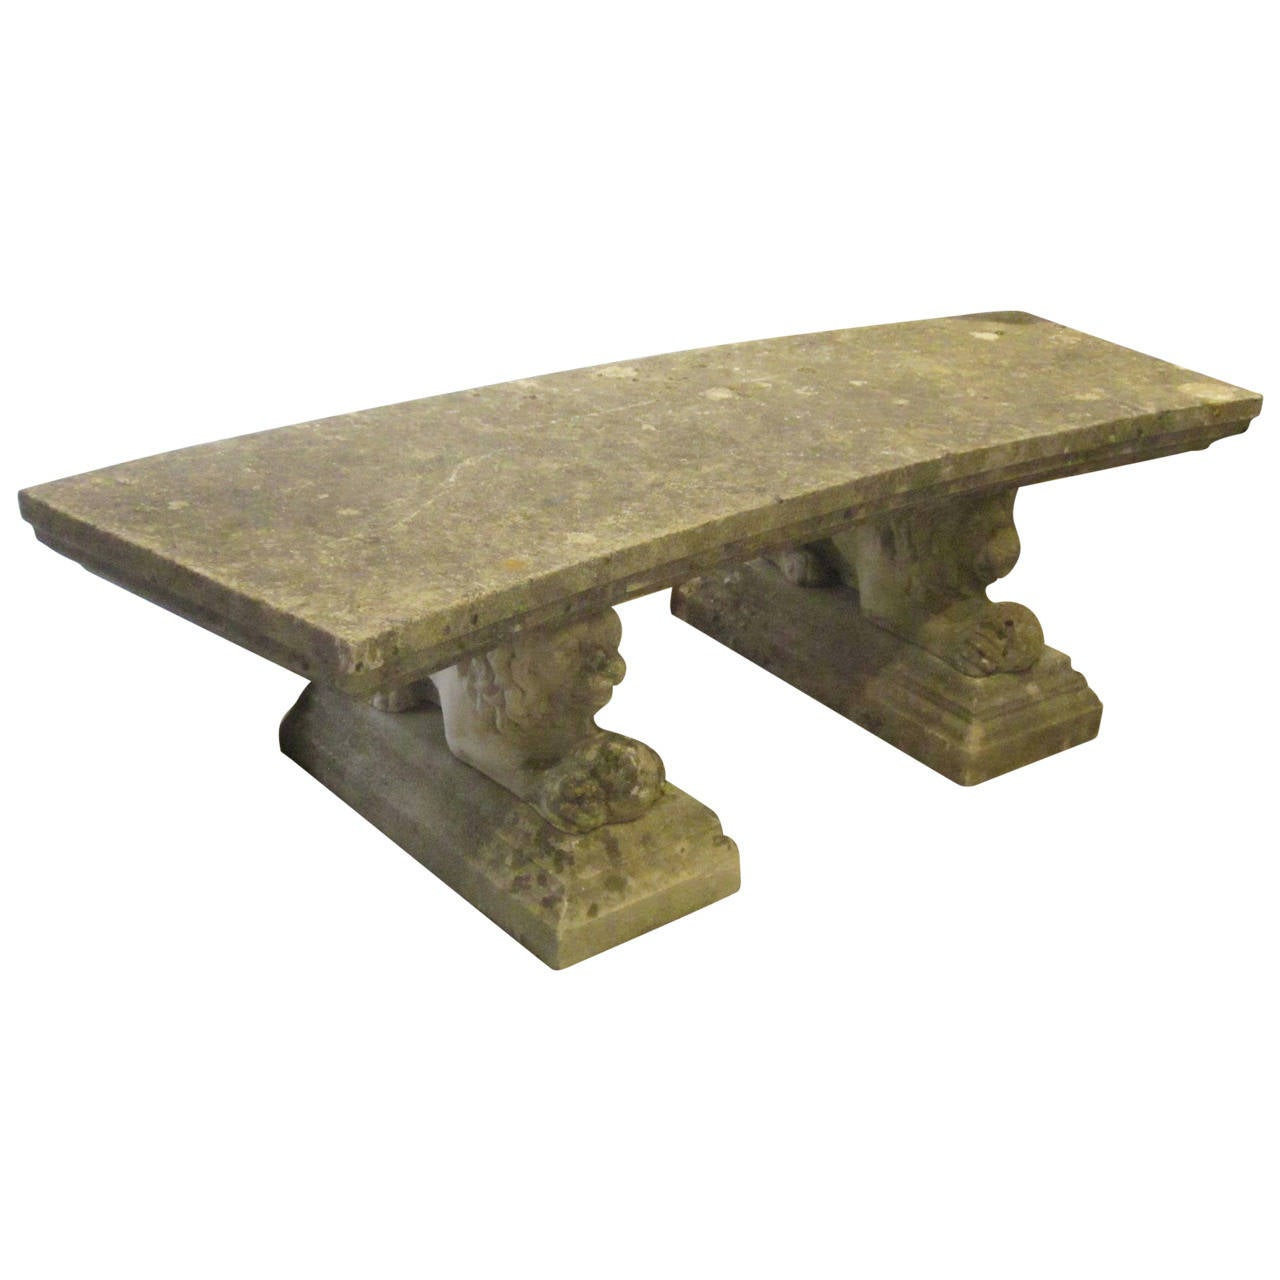 English Stone Curved Garden Bench With Cast Lion Legs Circa 1940s At 1stdibs